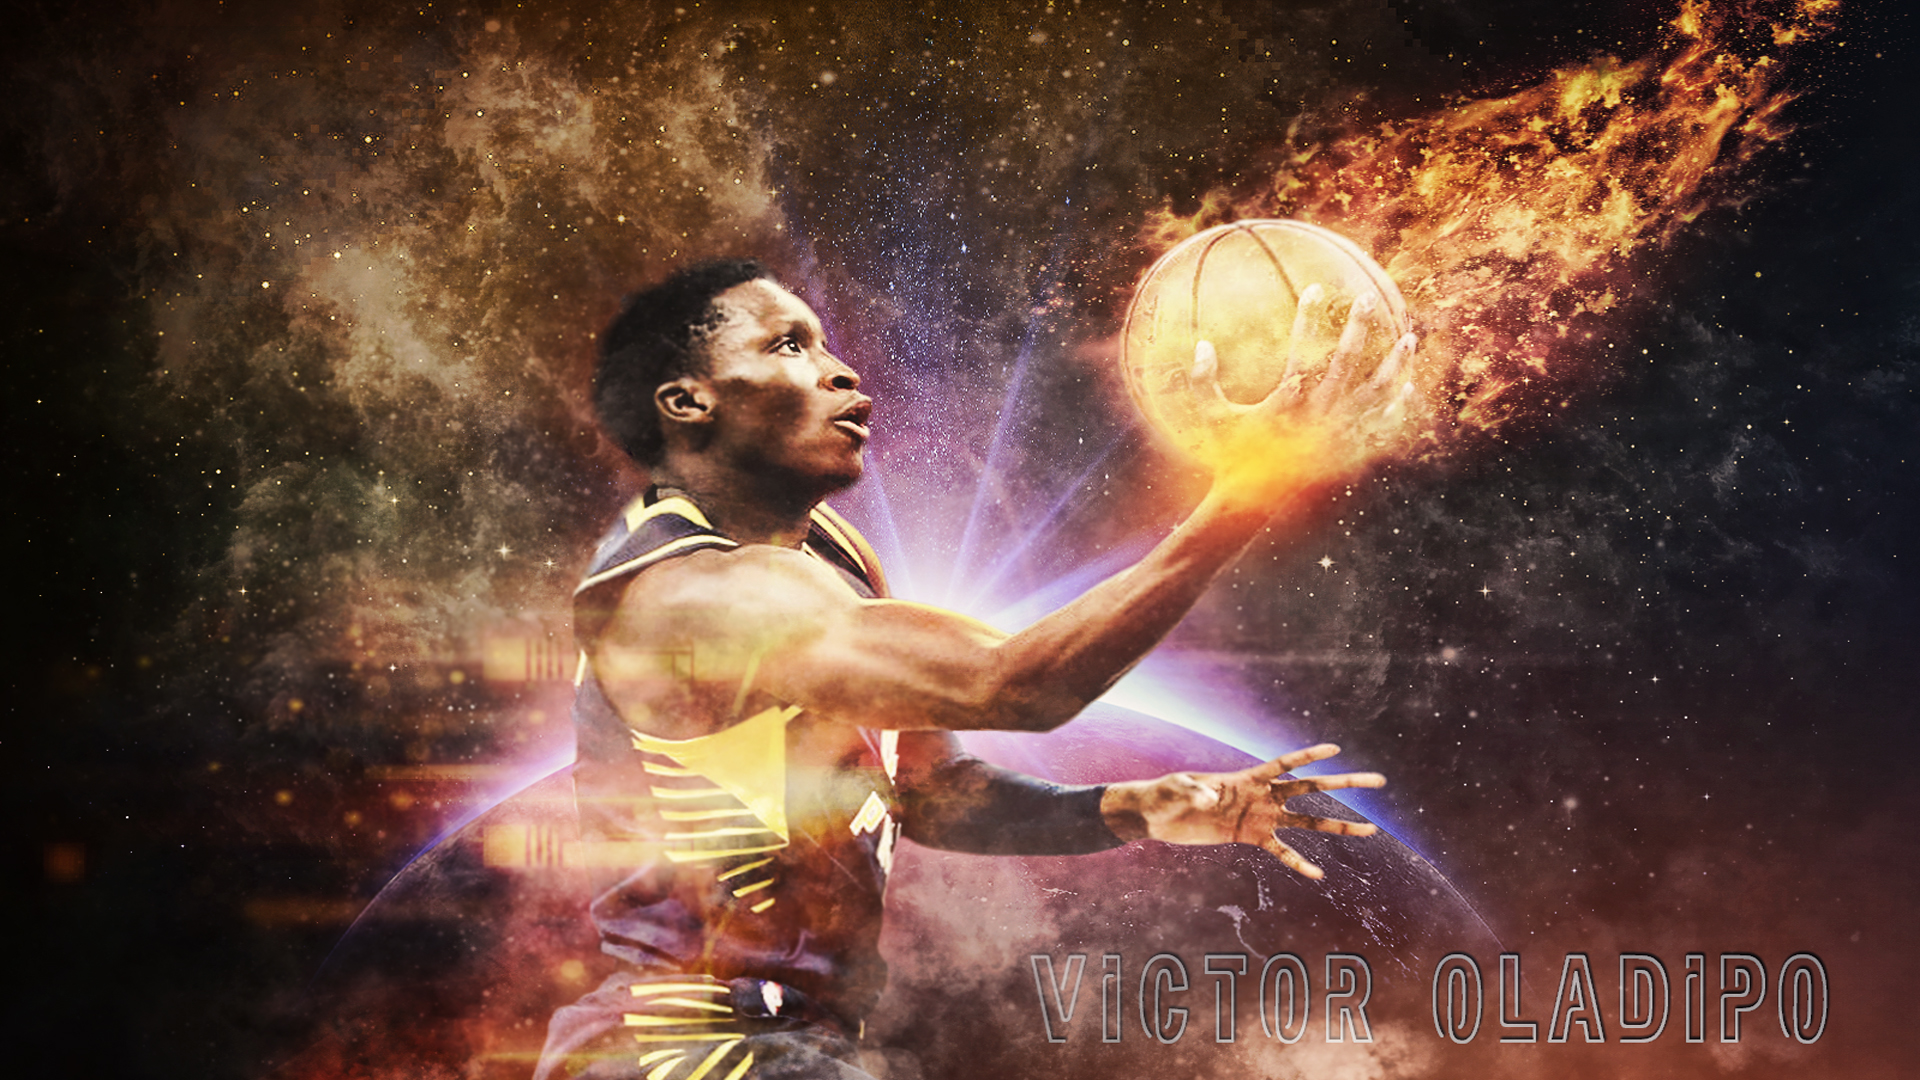 VICTOR OLADIPO it's to FIRE ! by AYGBMN